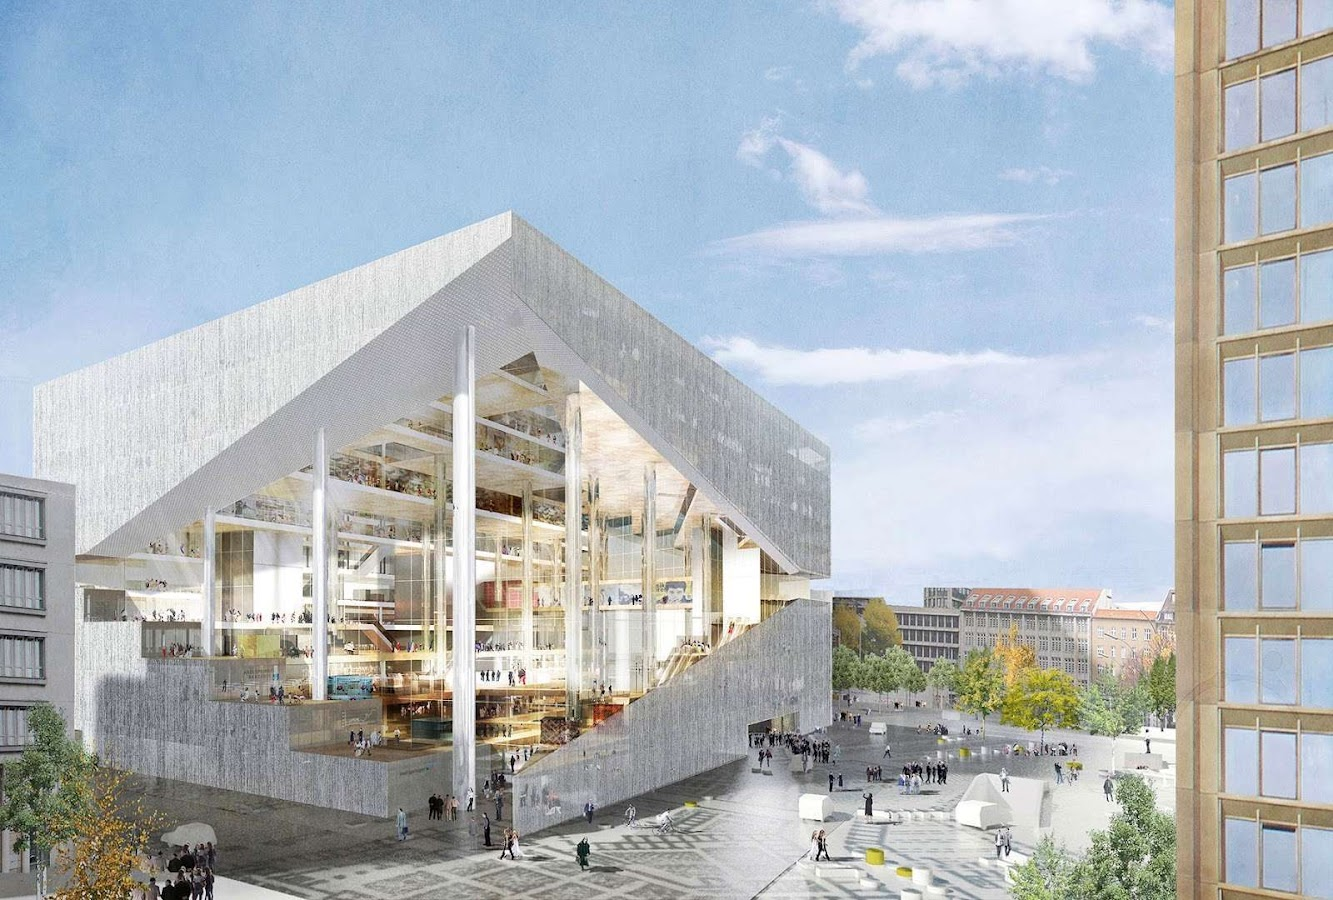 News: OMA WINS AXEL SPRINGER'S NEW MEDIA CENTRE COMPETITION